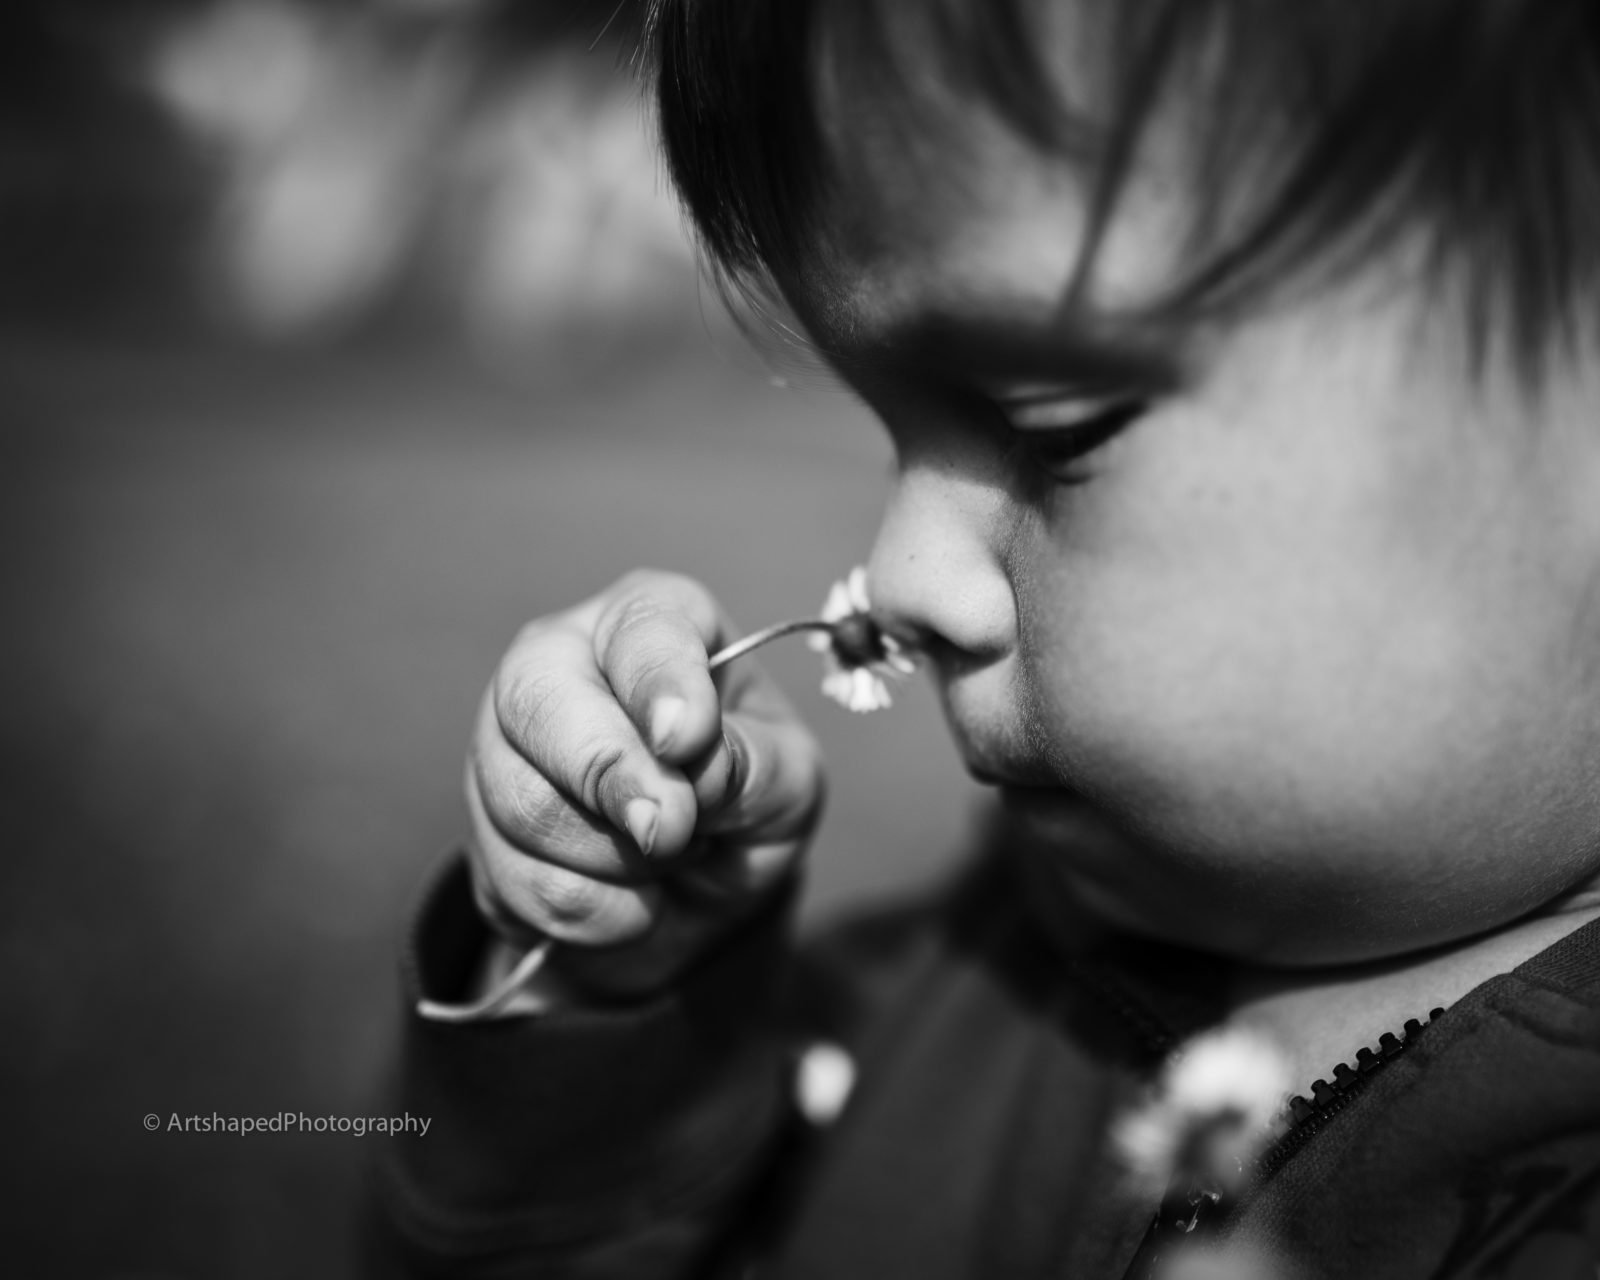 In this black and white photograph ArtShaped Photography a toddler discovers the wonders of natue by taking in the smell of a freshly picked daisy.